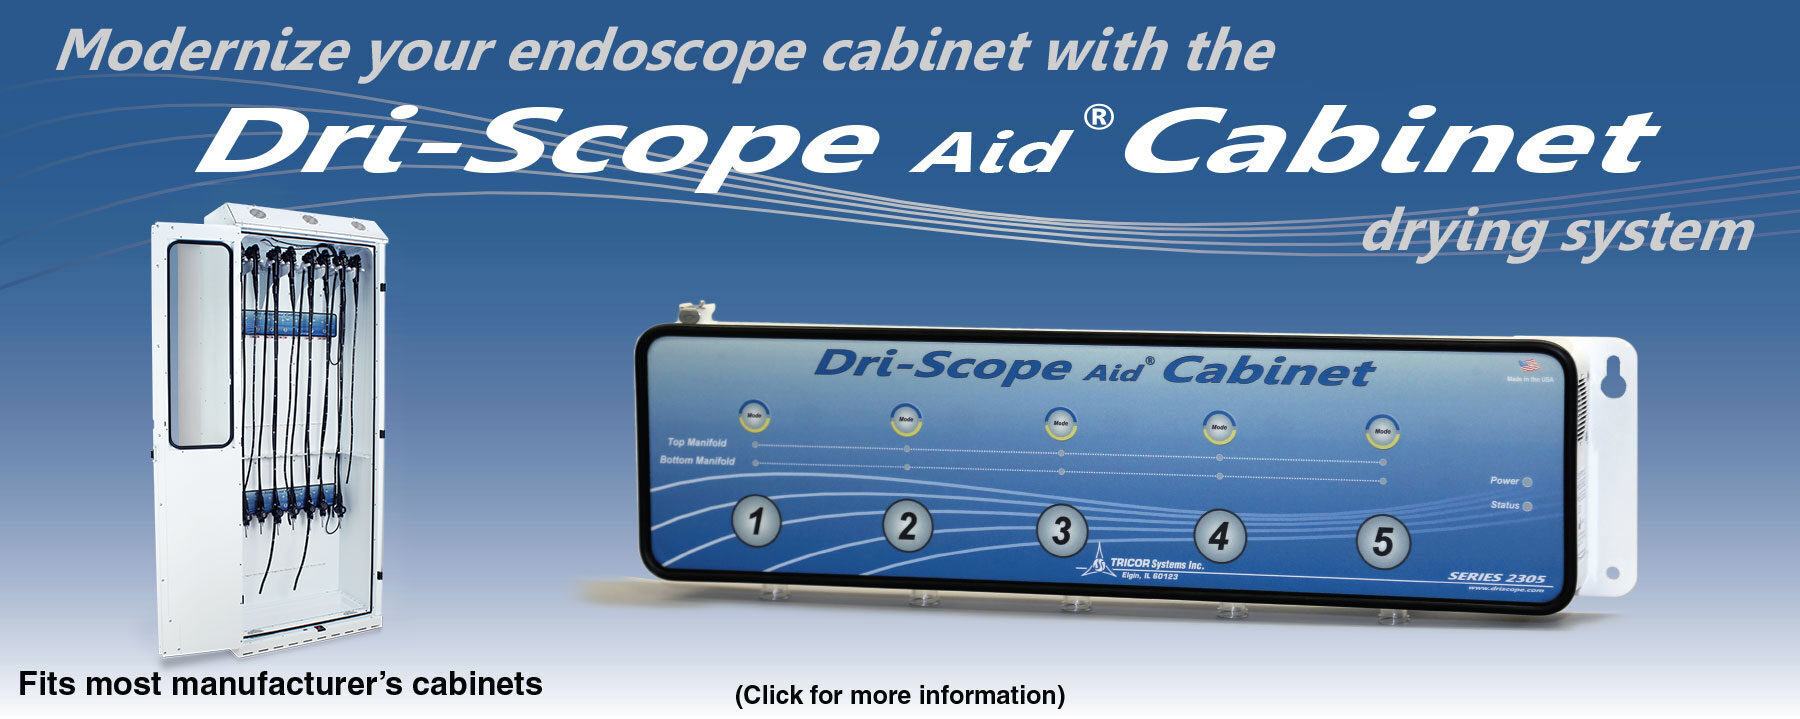 Dri-Scope Aid Cabinet Drying System